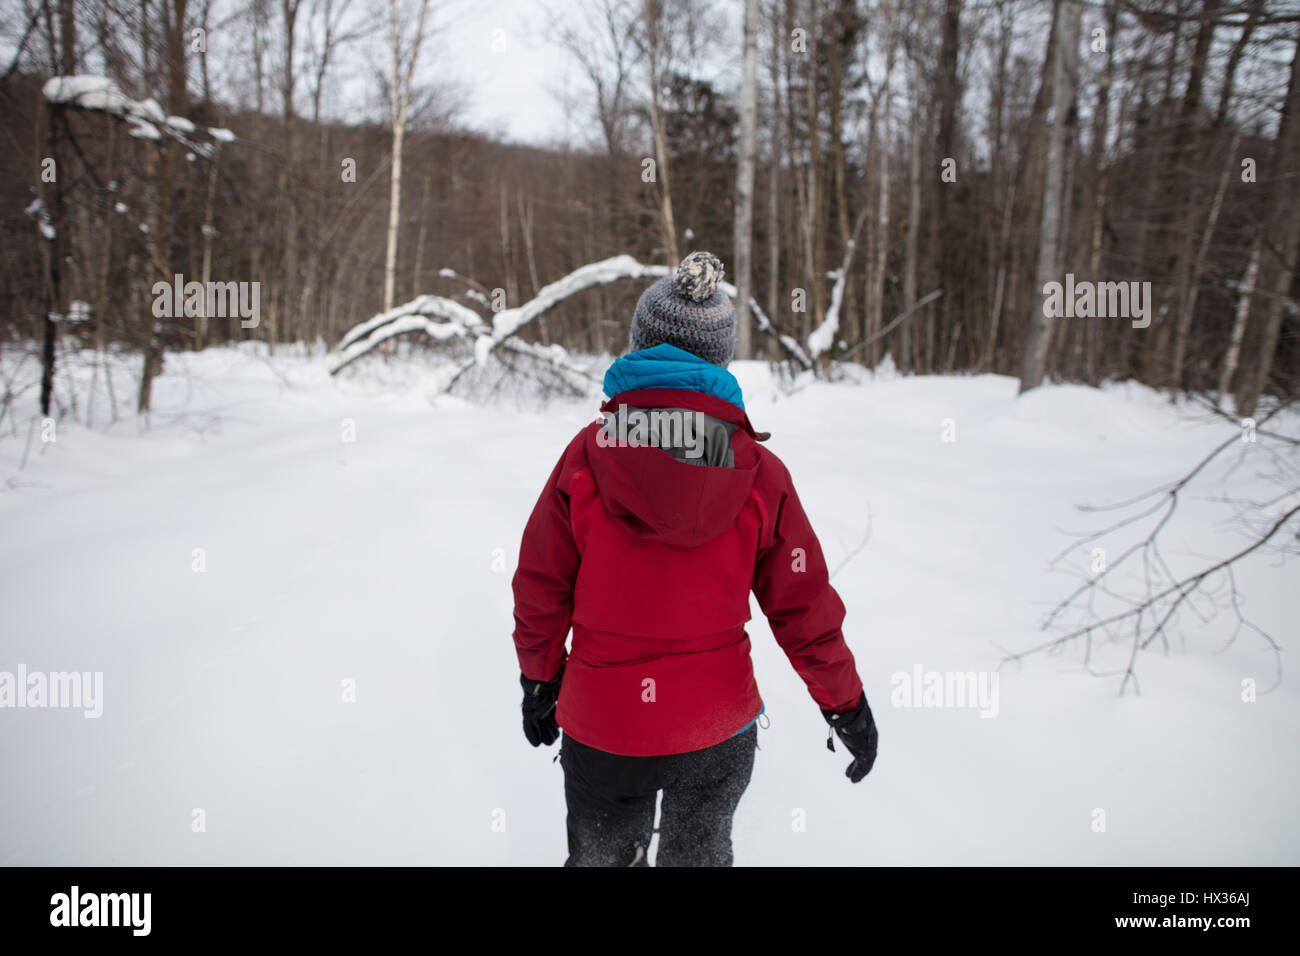 A lady in a red jacket snowshoes in the forest after a snow storm in Hastings Highlands, Ontario, Canada. - Stock Image